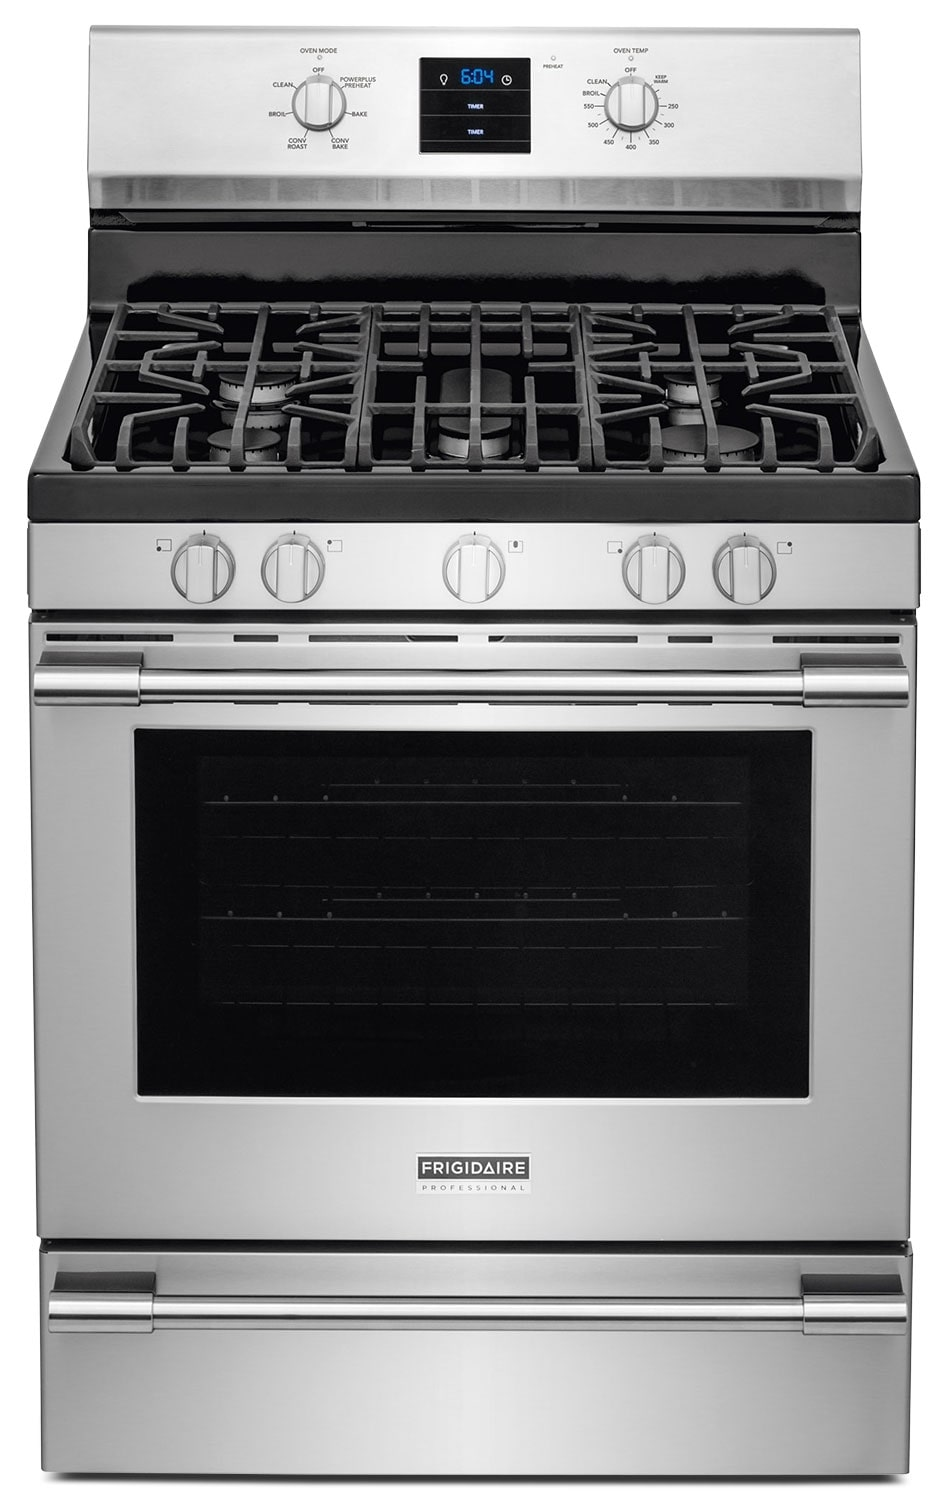 Frigidaire Professional Stainless Steel Freestanding Gas Convection Range (5.6 Cu. Ft.) - FPGF3077QF